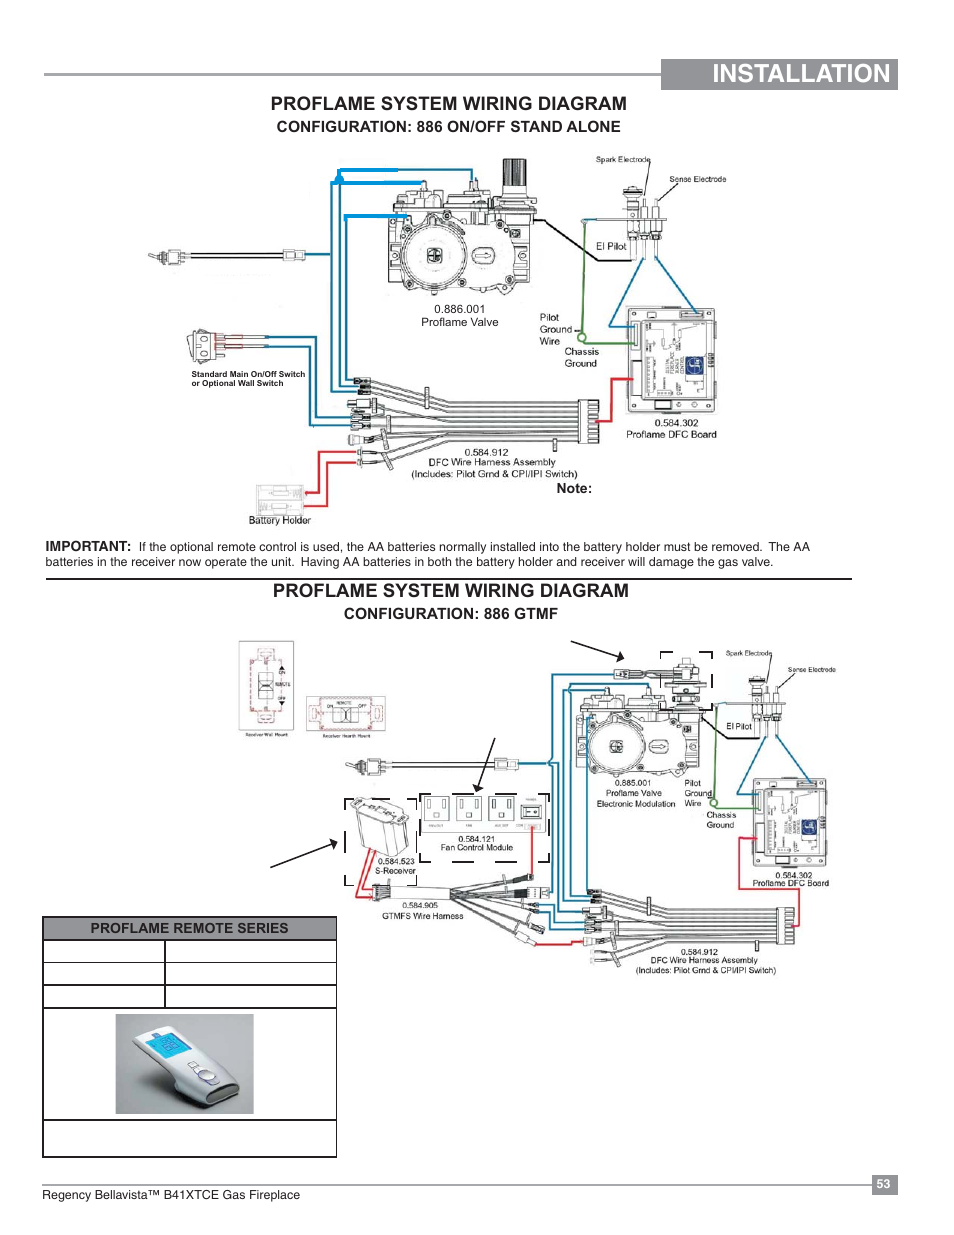 for a new telephone wiring diagram for installation installation wiring diagram for industri